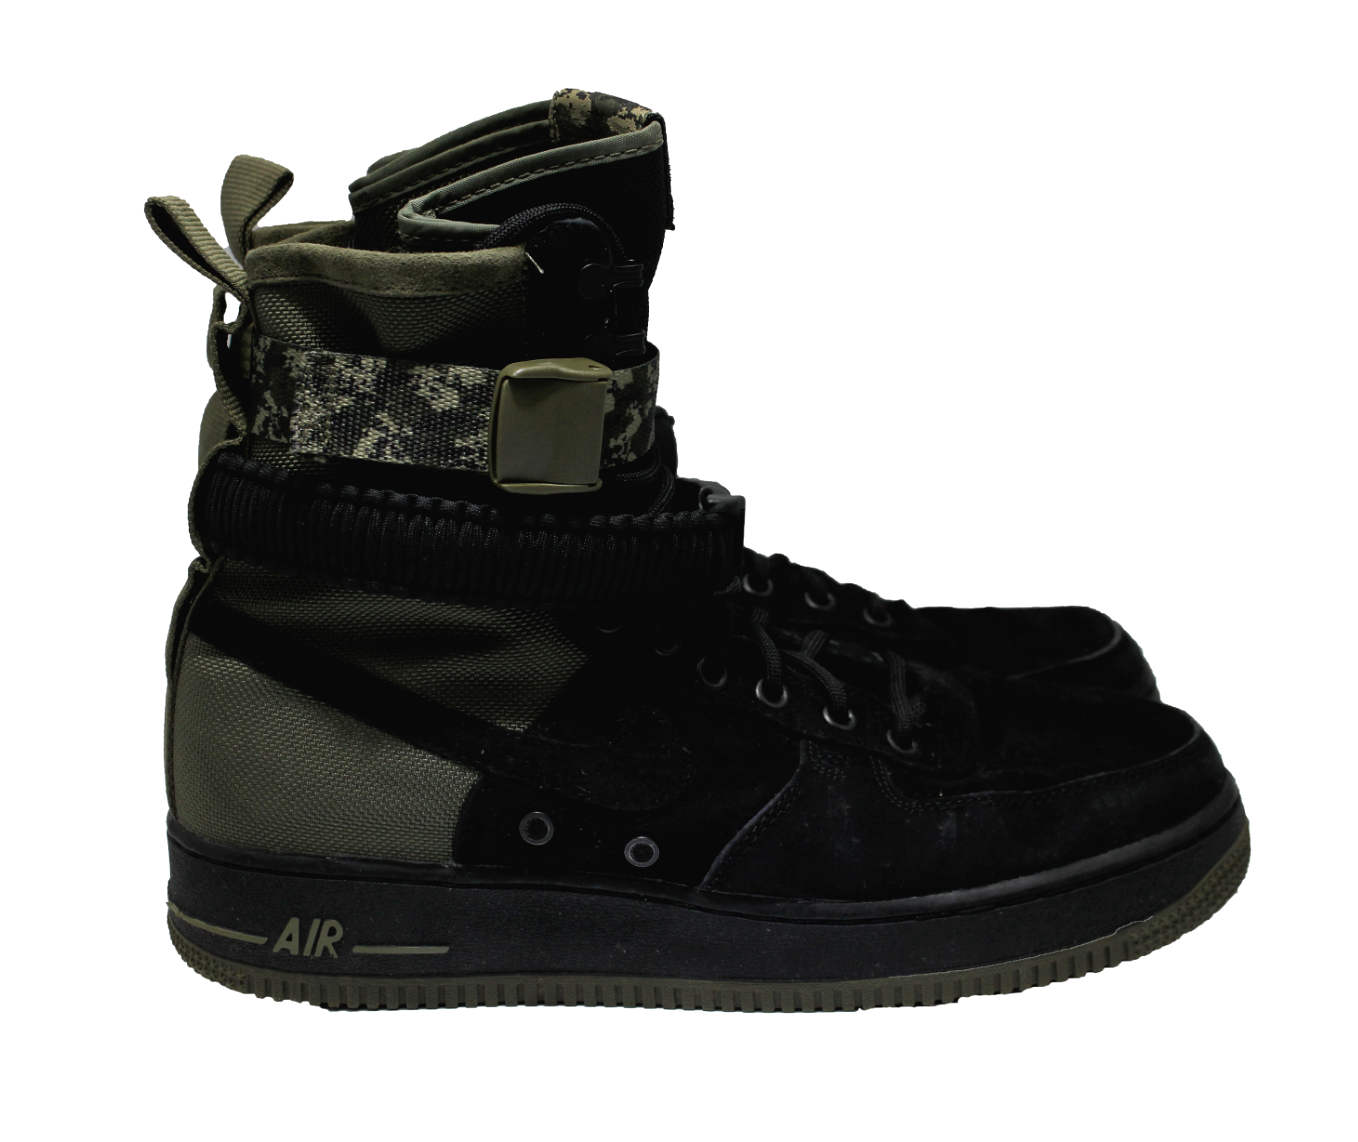 NIKE SF Mens Air Force 1 Olive Camo High Top Boot Sneakers Size 9.5 NEW